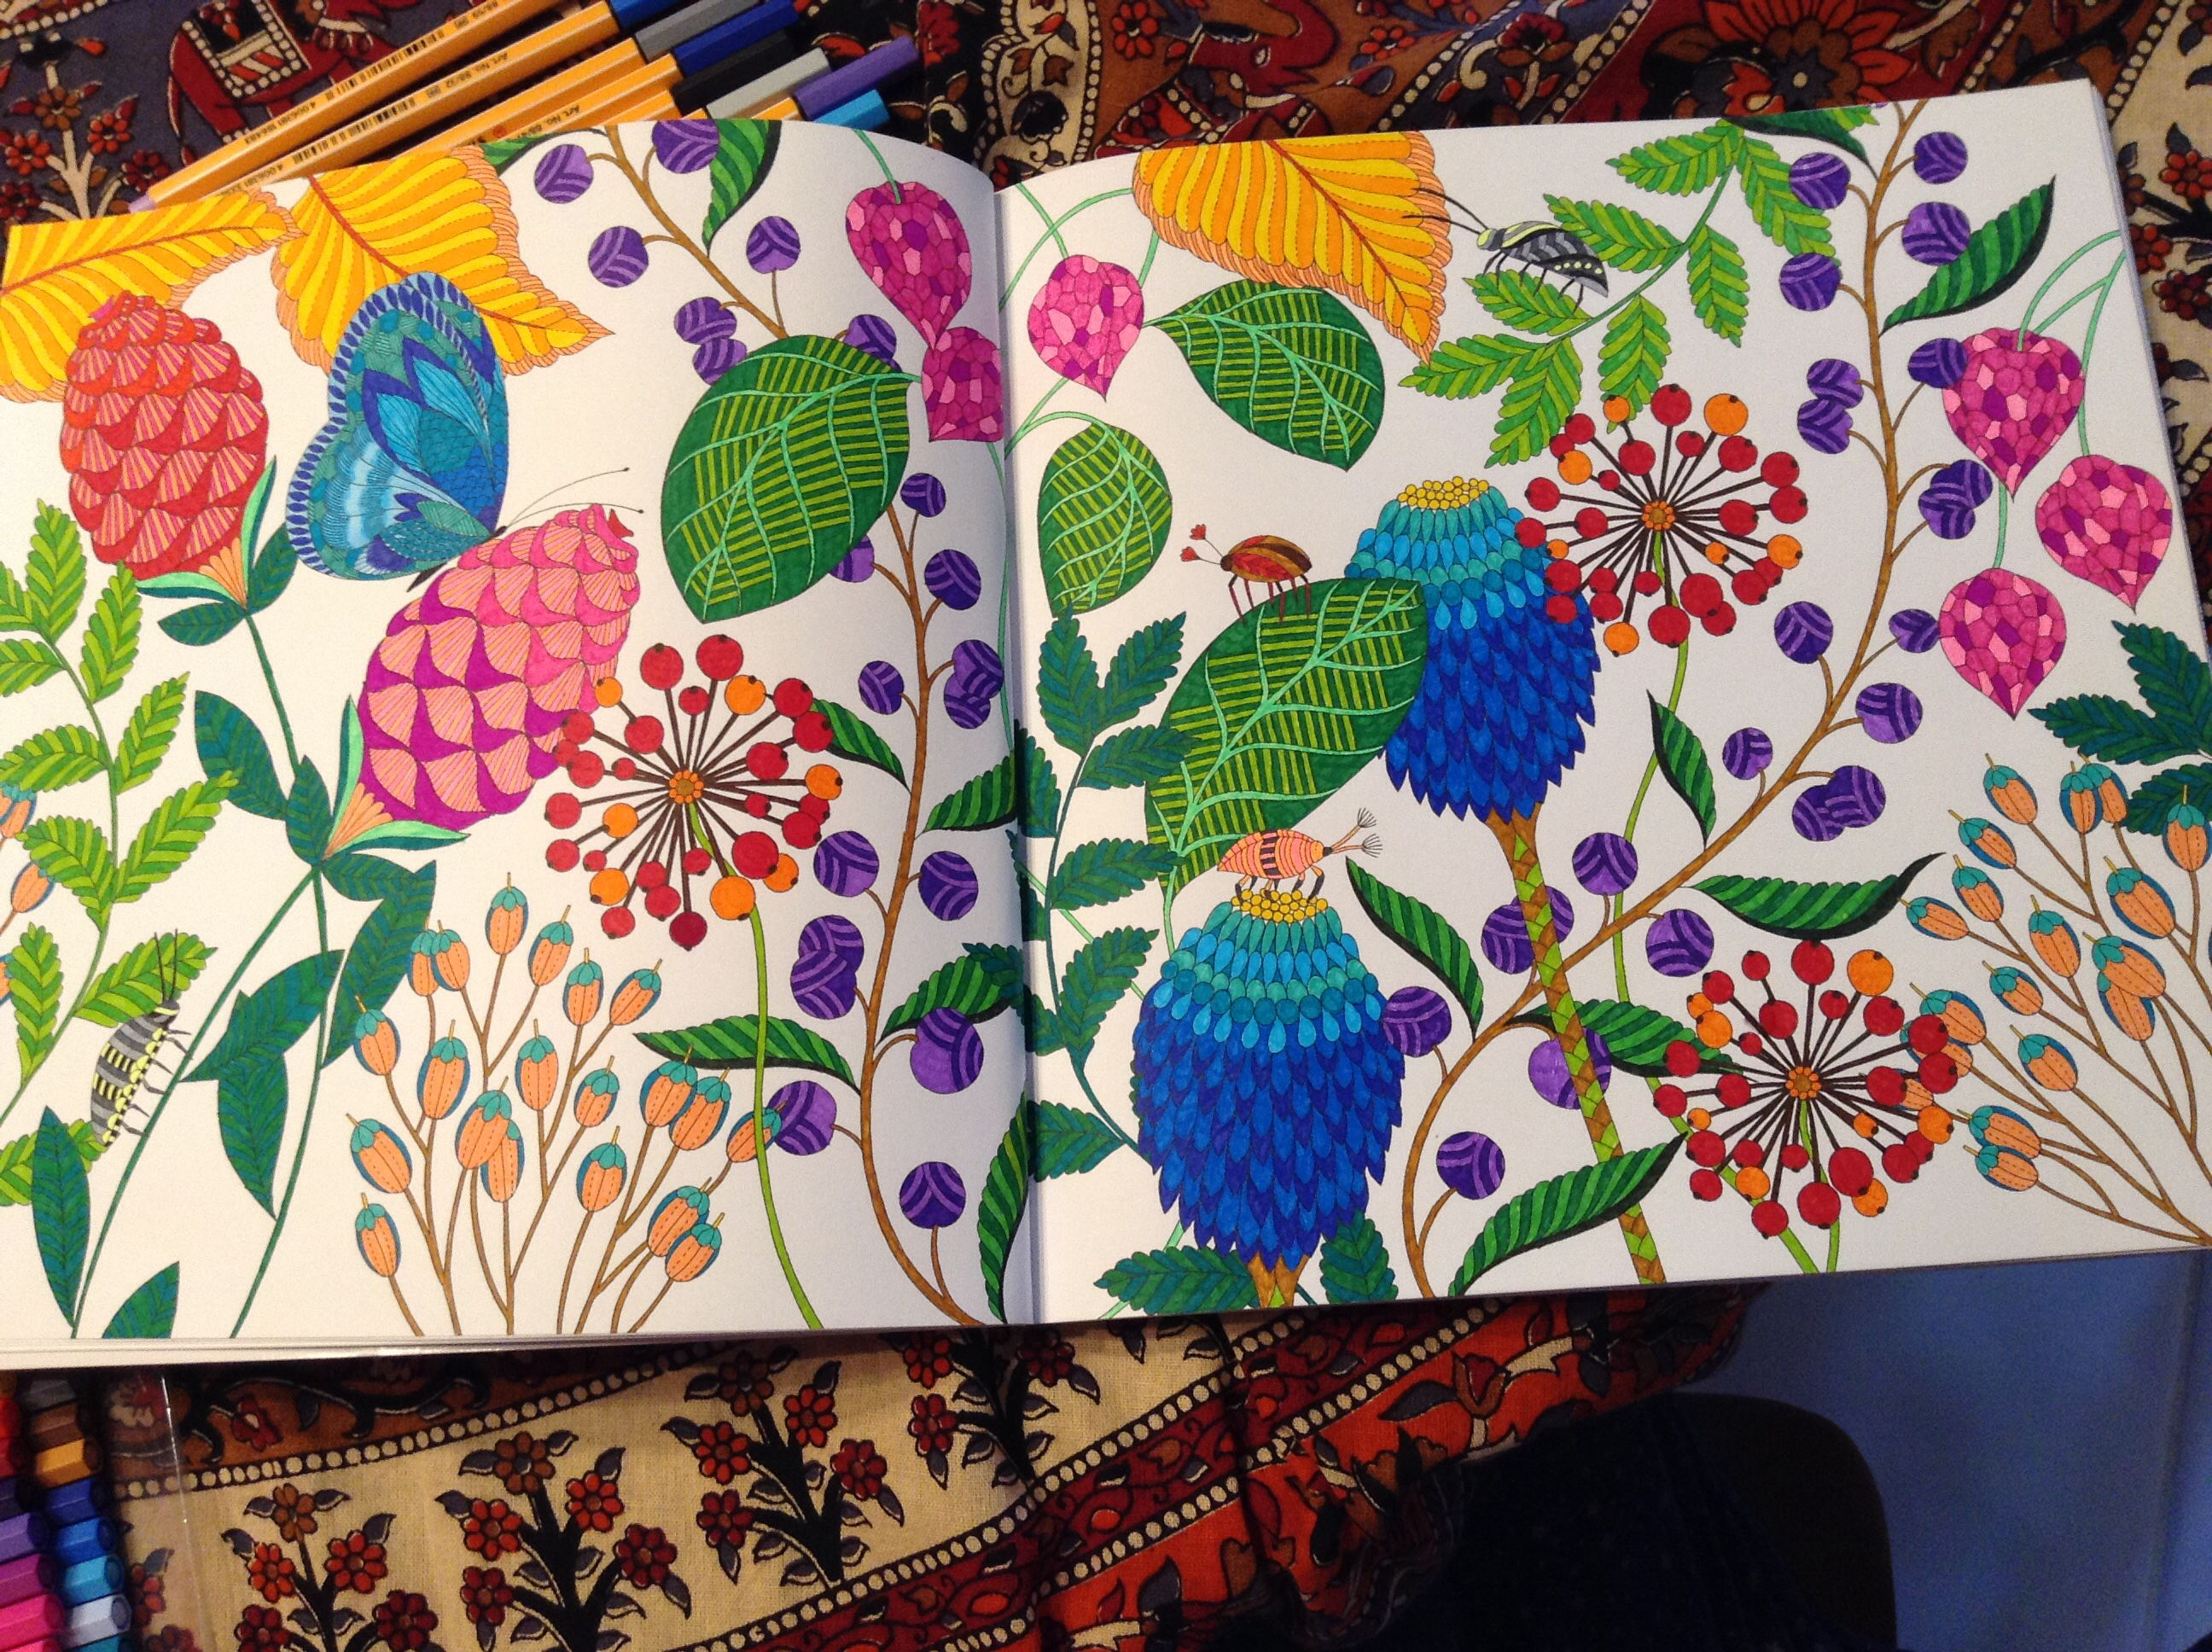 Tropical World Coloring Book Millie Marotta Tropical Wonderland Millie Marotta Coloring Book Millie Marotta Tropical